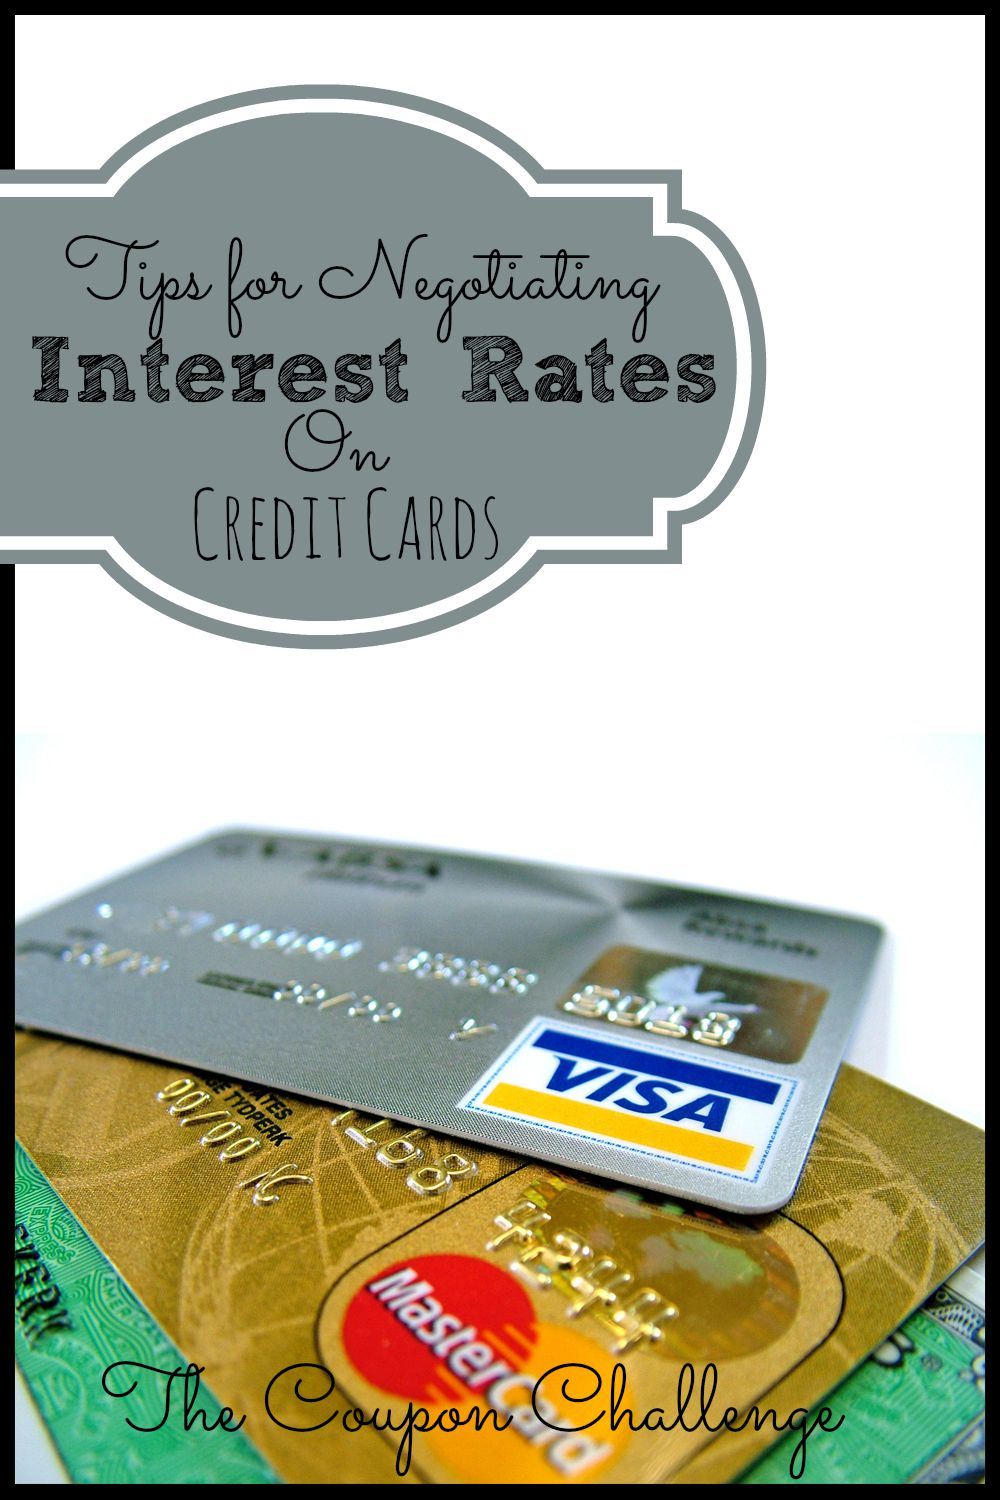 Tips for Negotiating Interest Rates On Credit Cards